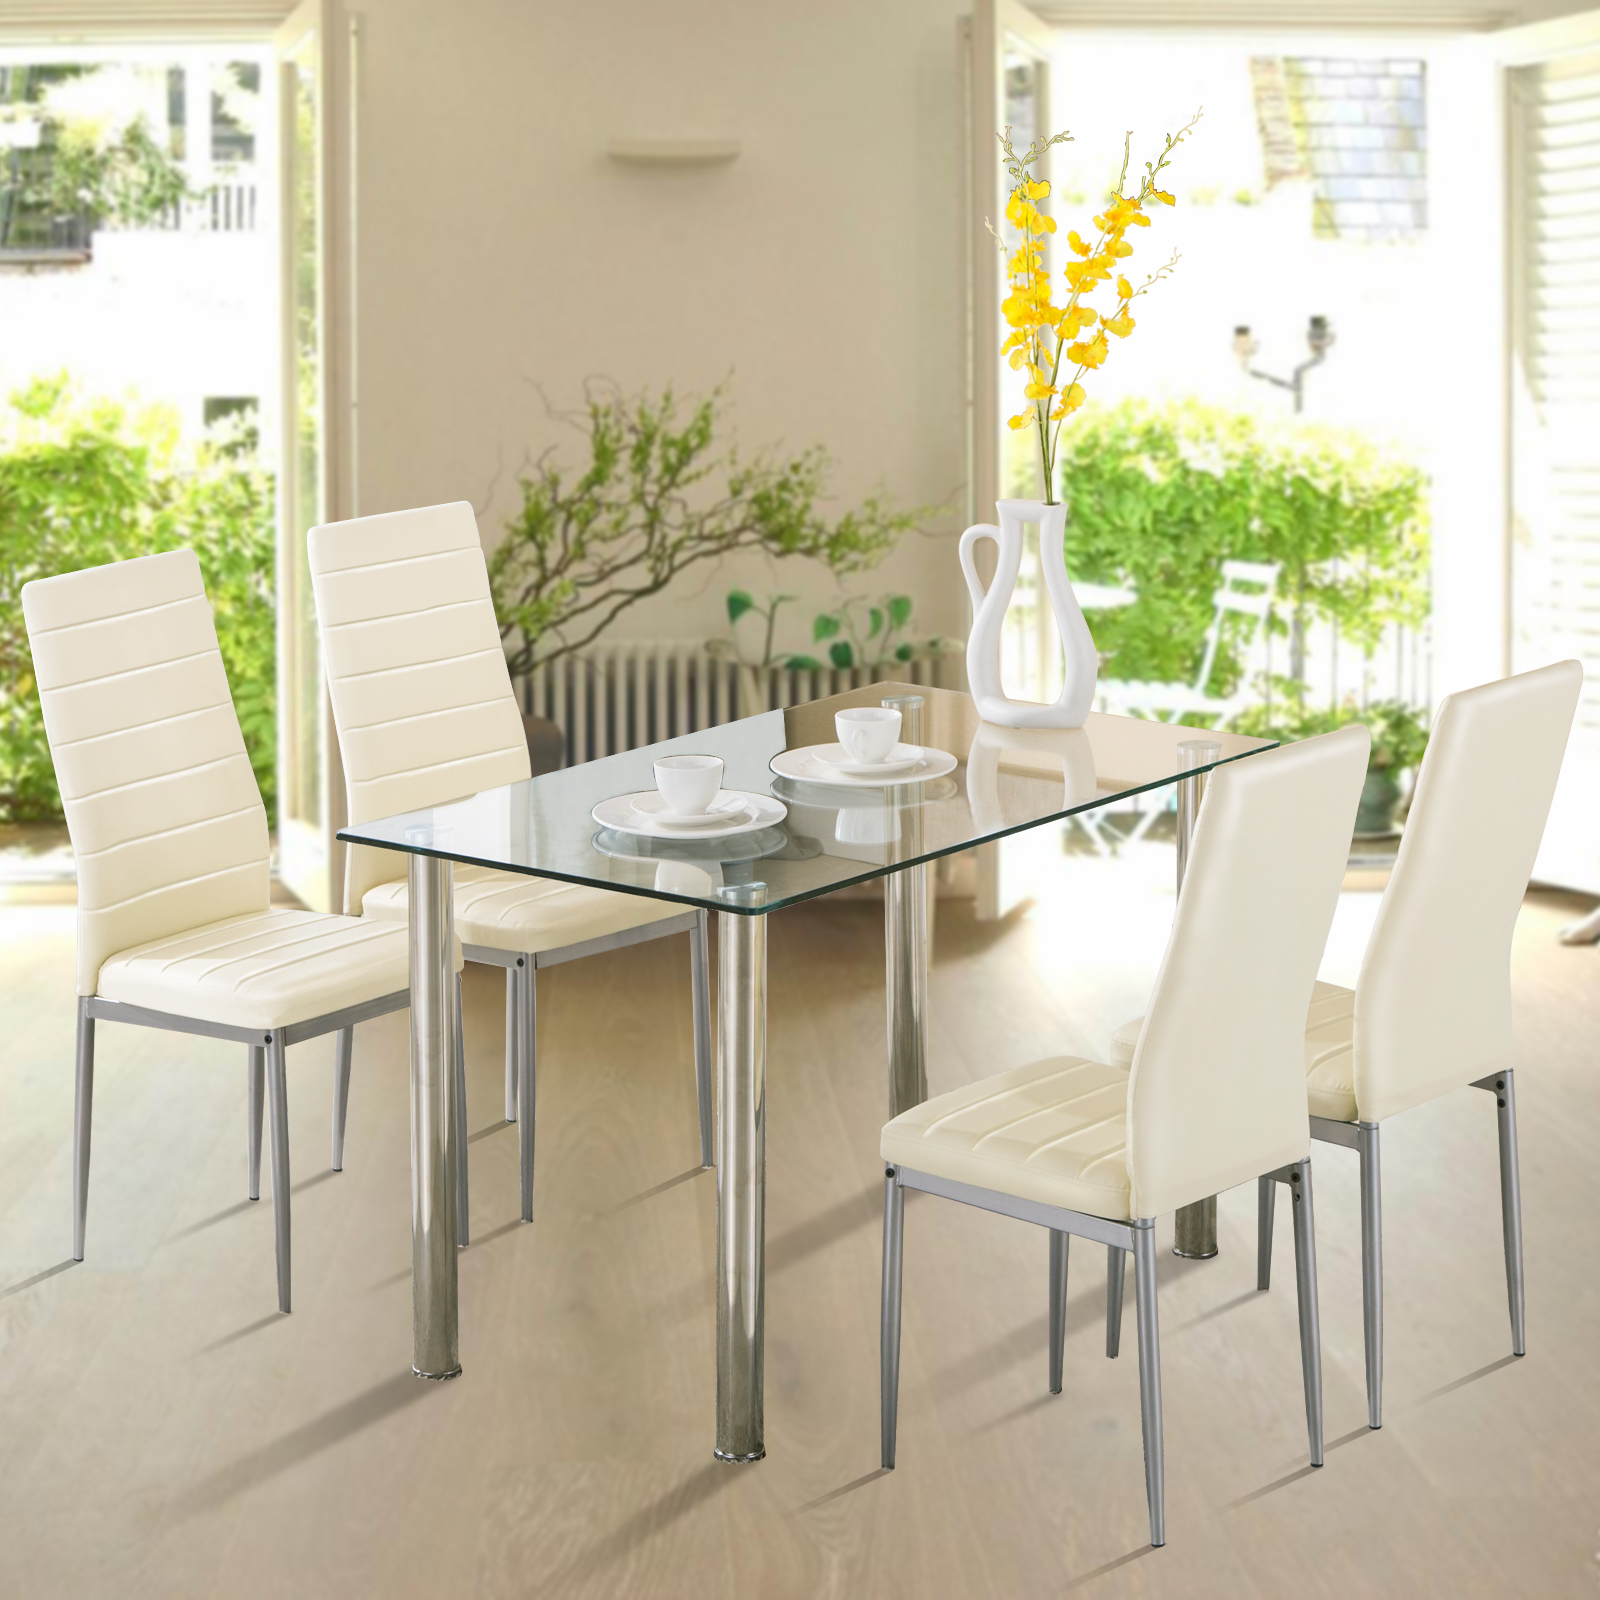 5 Piece Dining Table Set 4 Chairs Glass Metal Kitchen Room